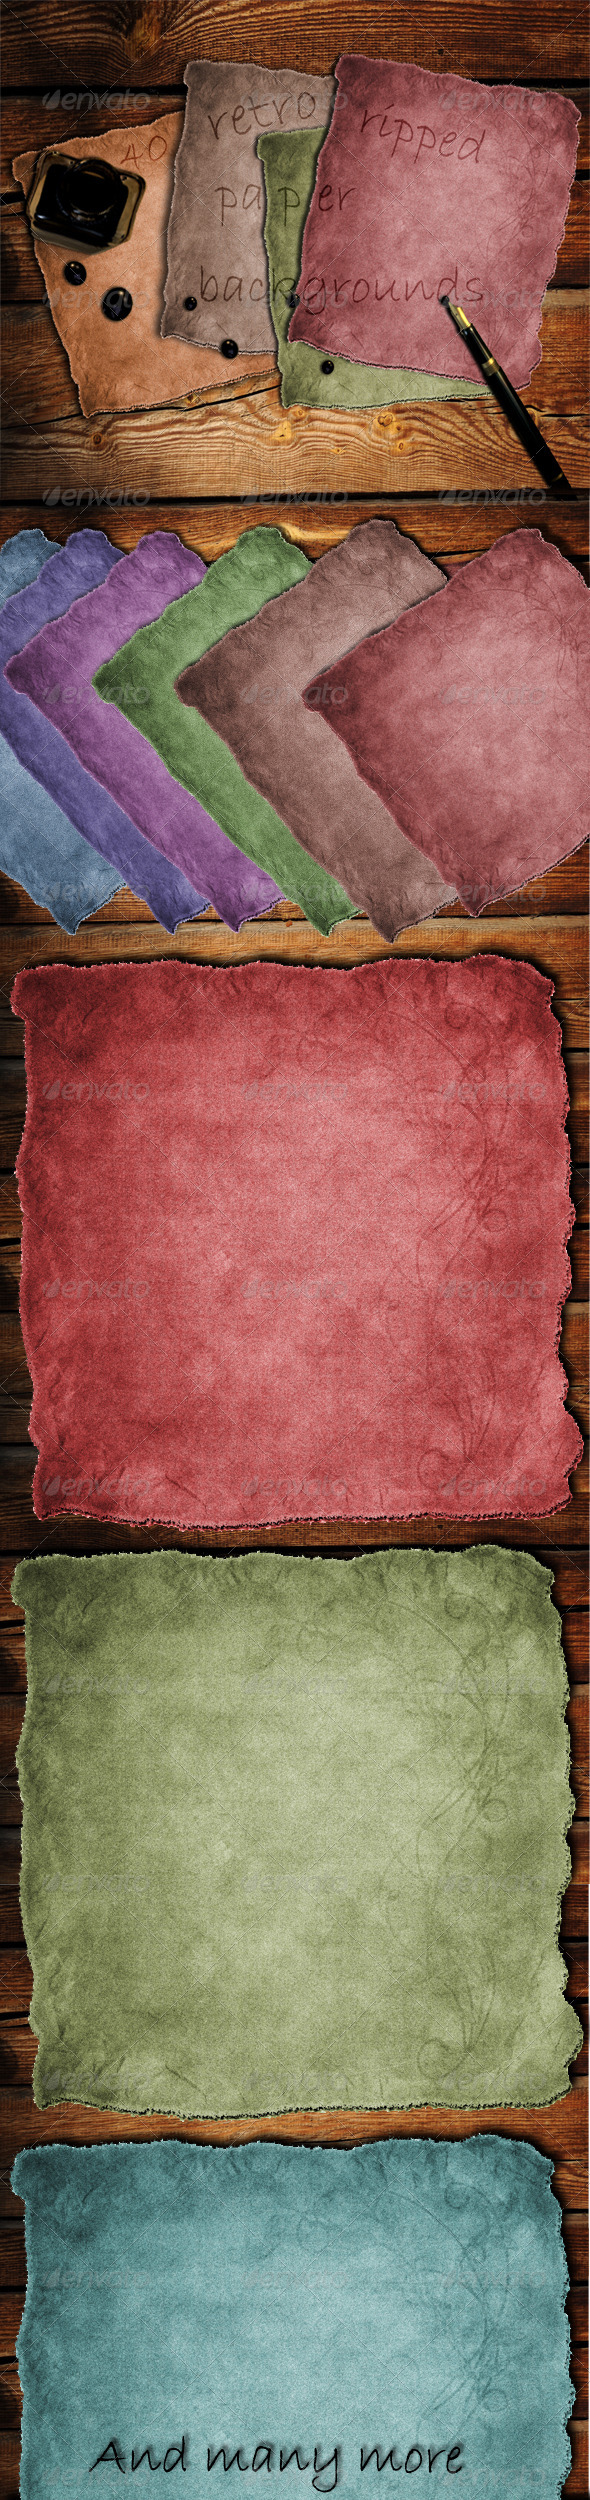 40 Retro Ripped Paper Backgrounds - Miscellaneous Backgrounds